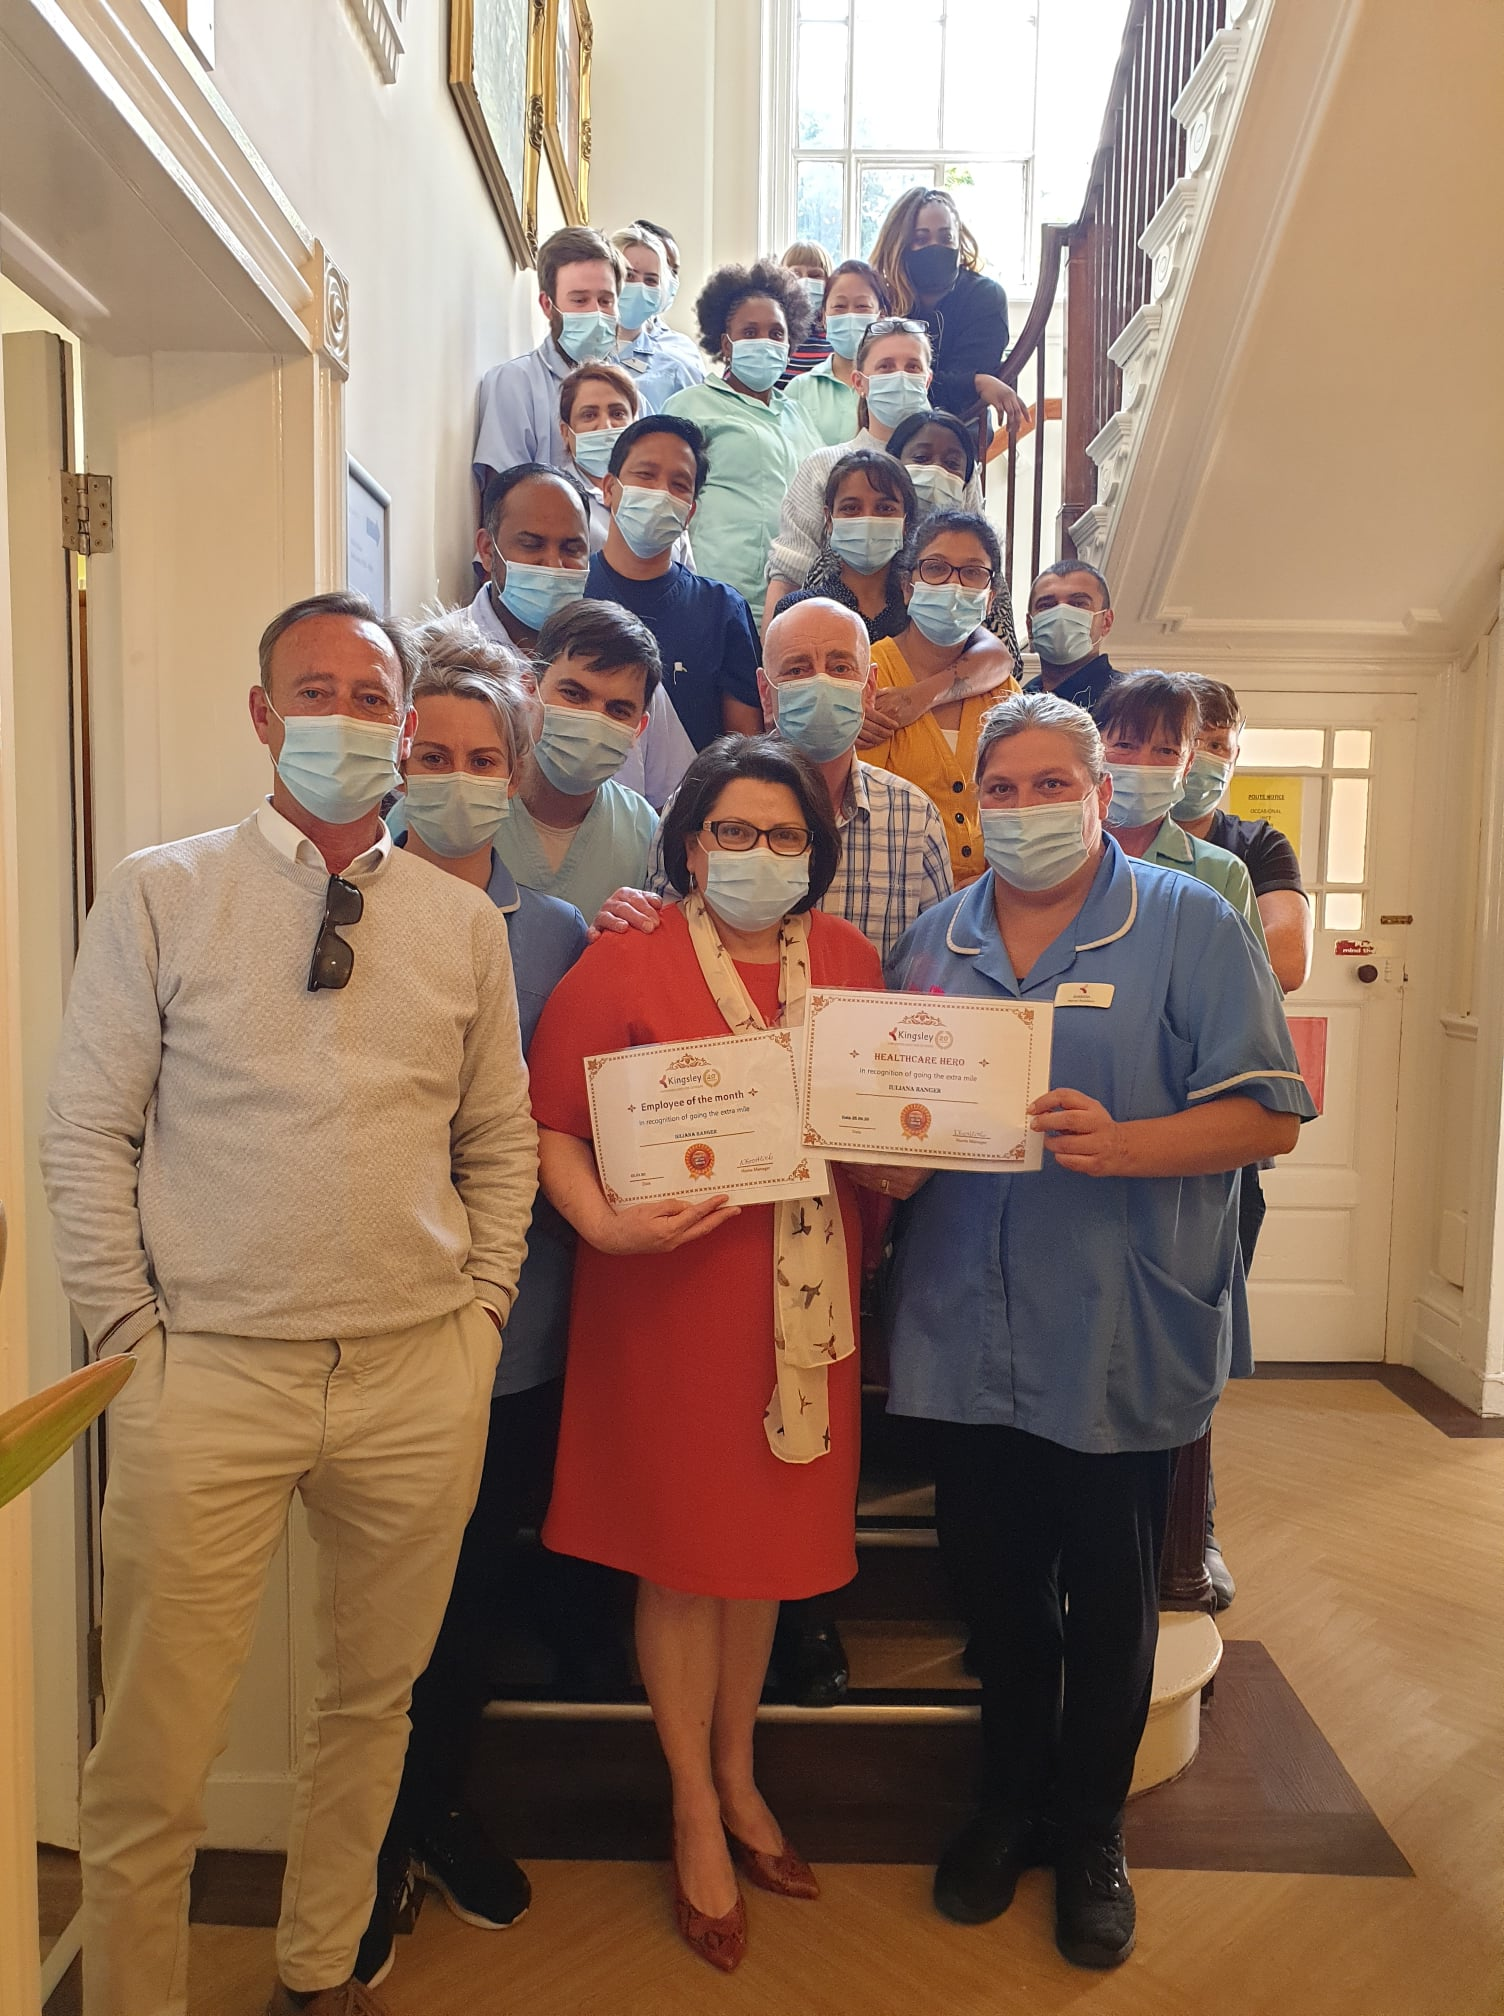 Nurse honoured by colleagues after battling back from Covid